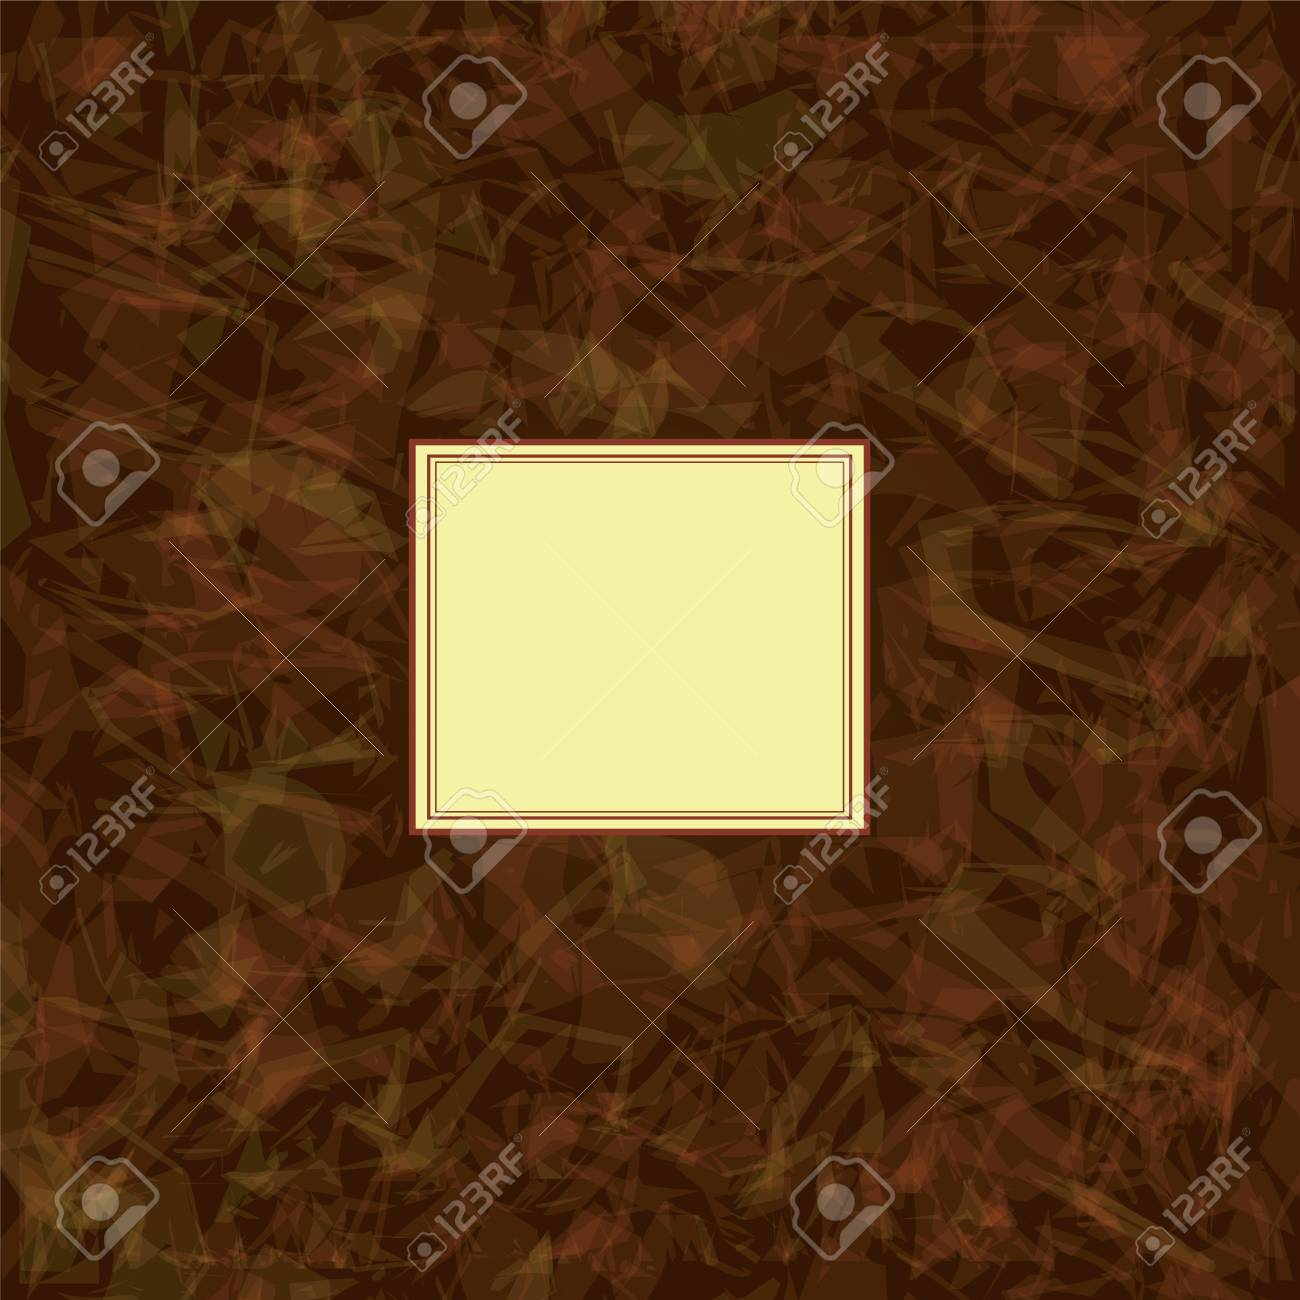 Invitation square card on grunge brown watercolor background Stock Vector - 13214935